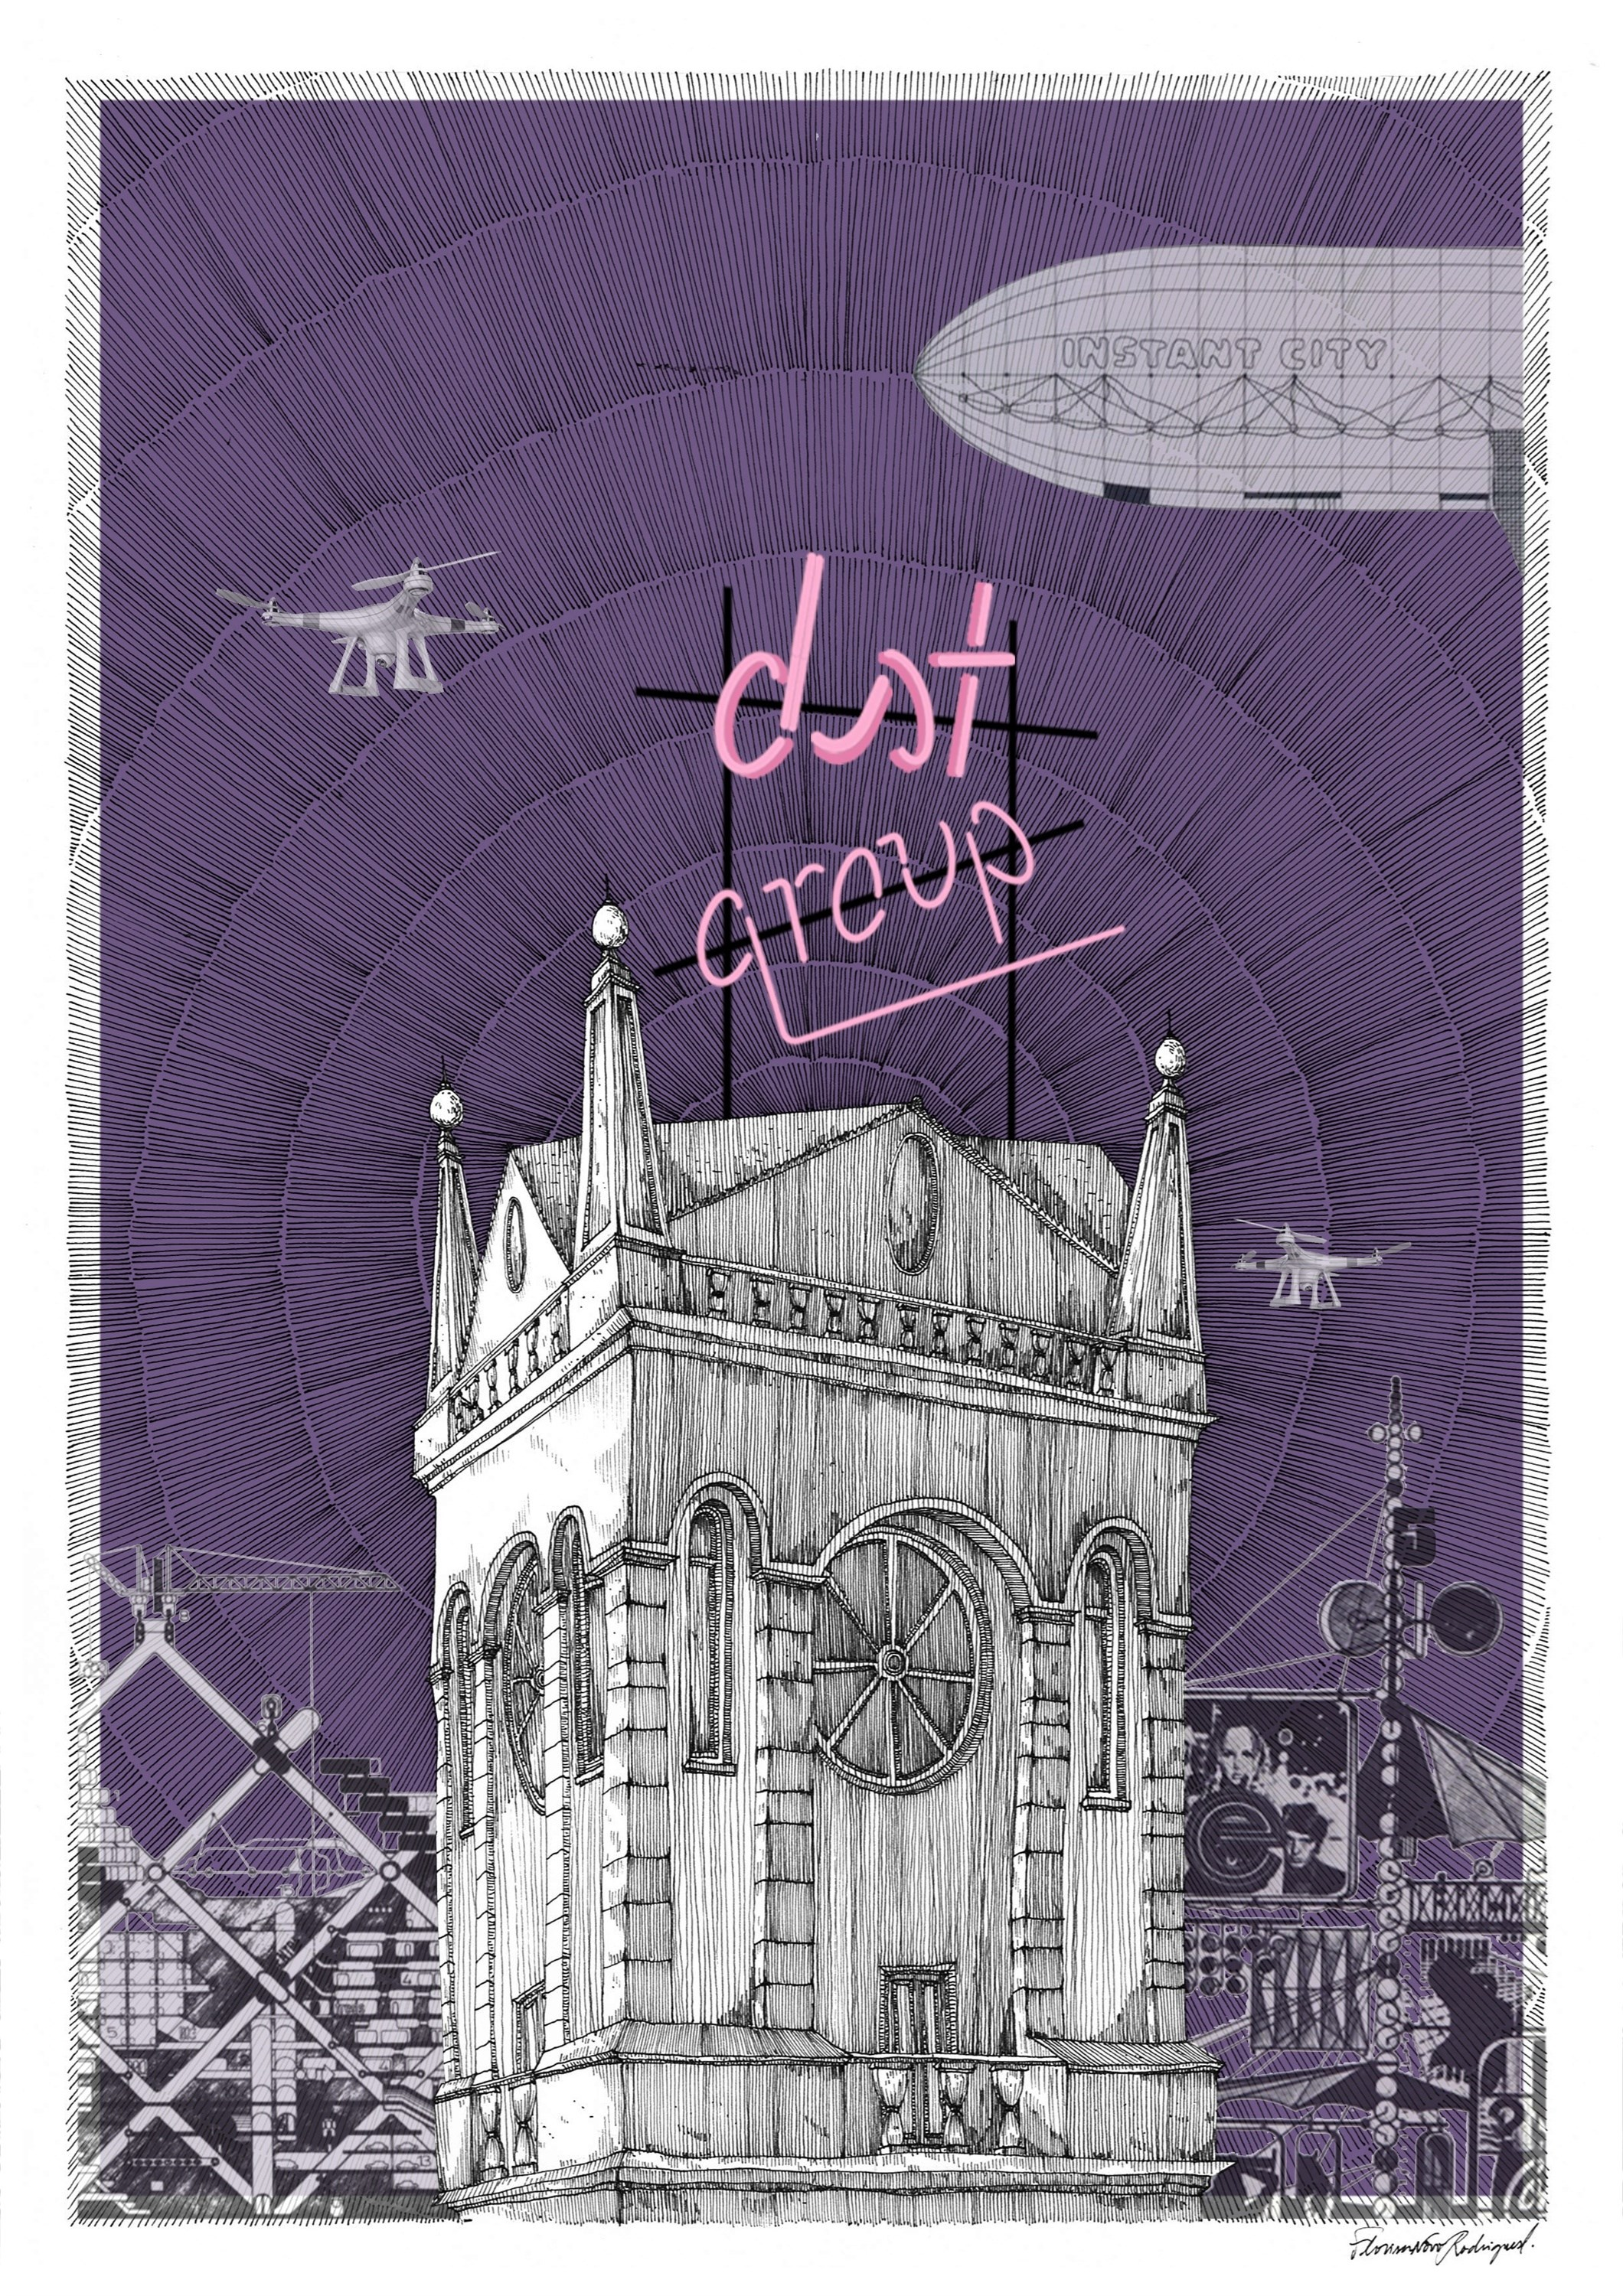 DST imaginada, contracapa, original Architecture Pen Drawing and Illustration by Florisa Novo Rodrigues